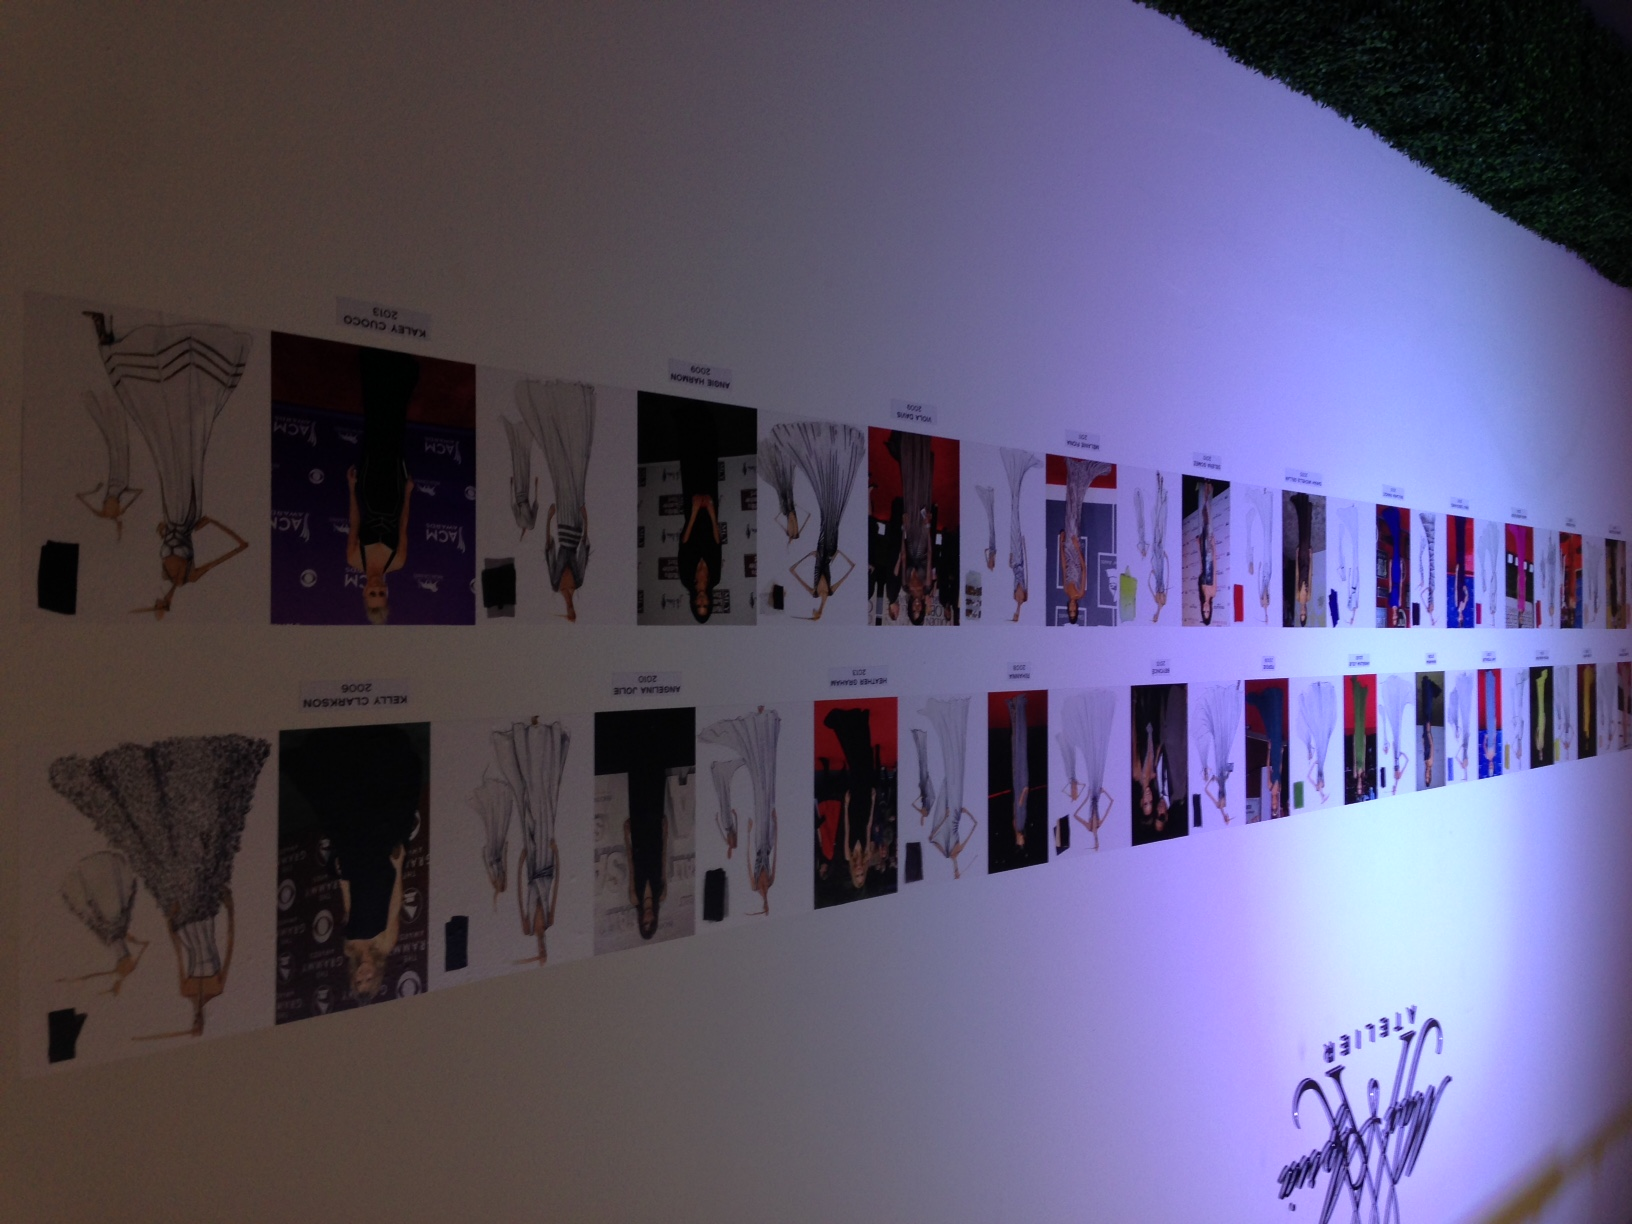 The wall of celebrities who have worn the dresses to the red carpet events